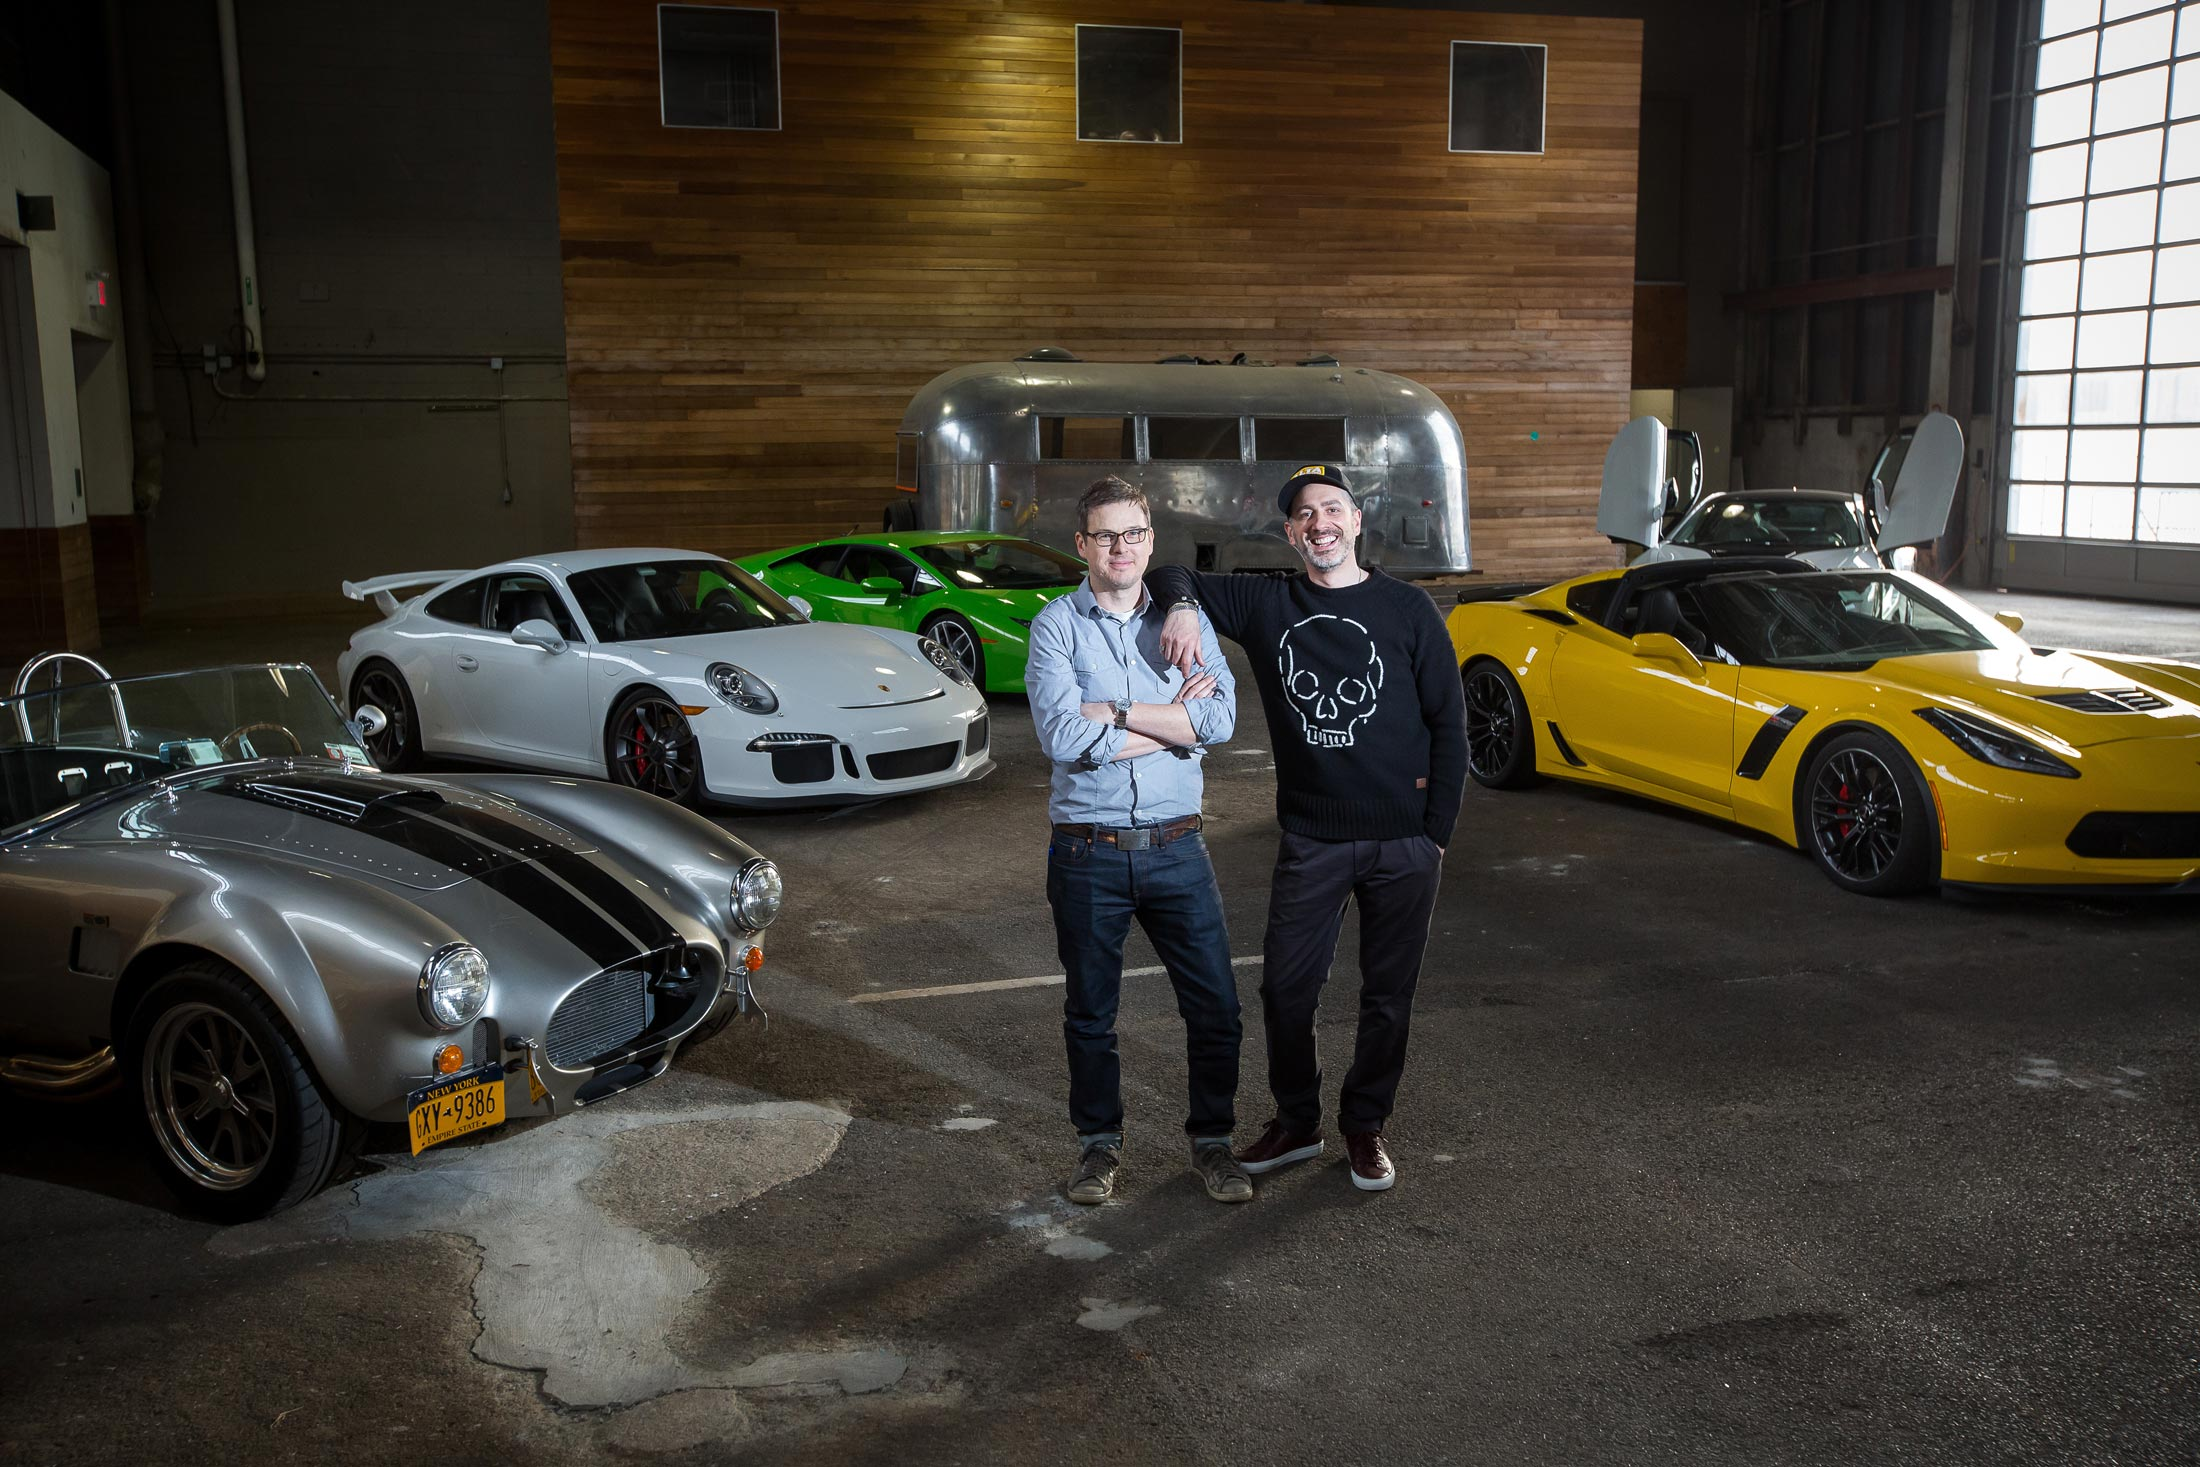 NYPD Horse Stable Now Home to $1 Million Worth of Classic Cars